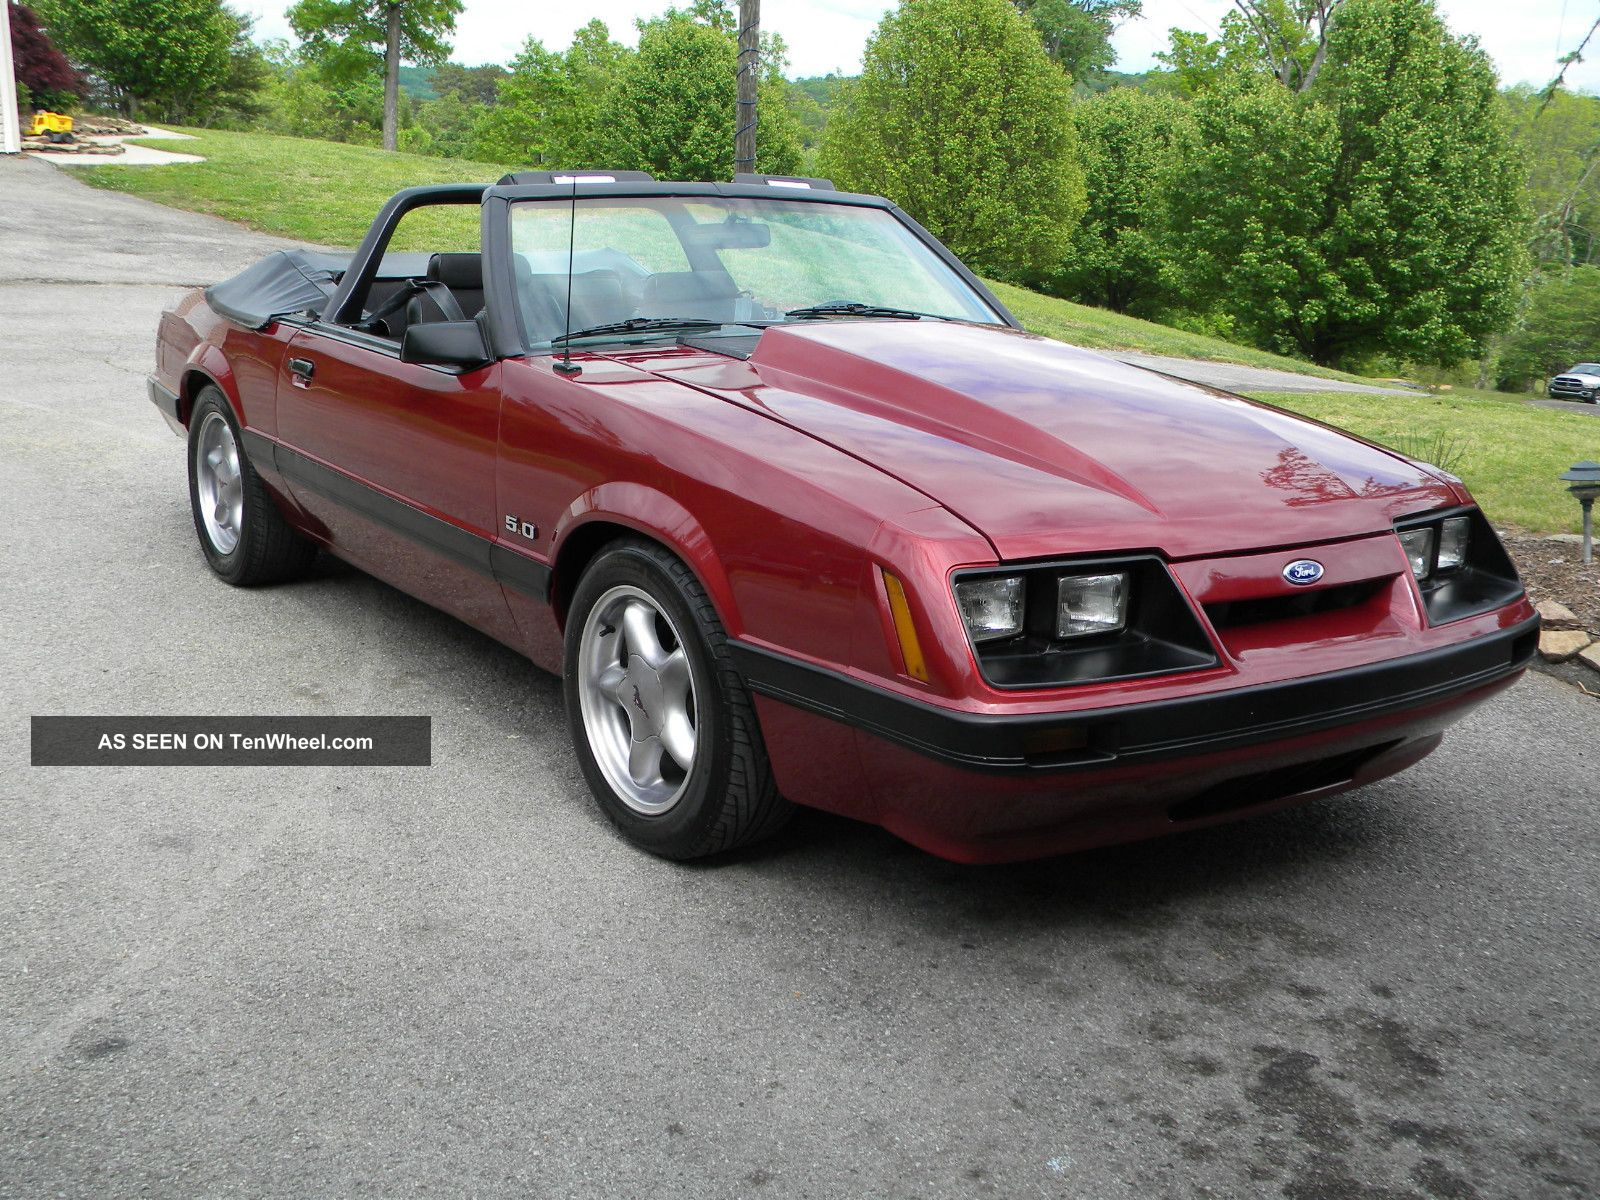 1986 Ford Mustang Lx Convertible - - Car - - 306,  5 Speed Mustang photo